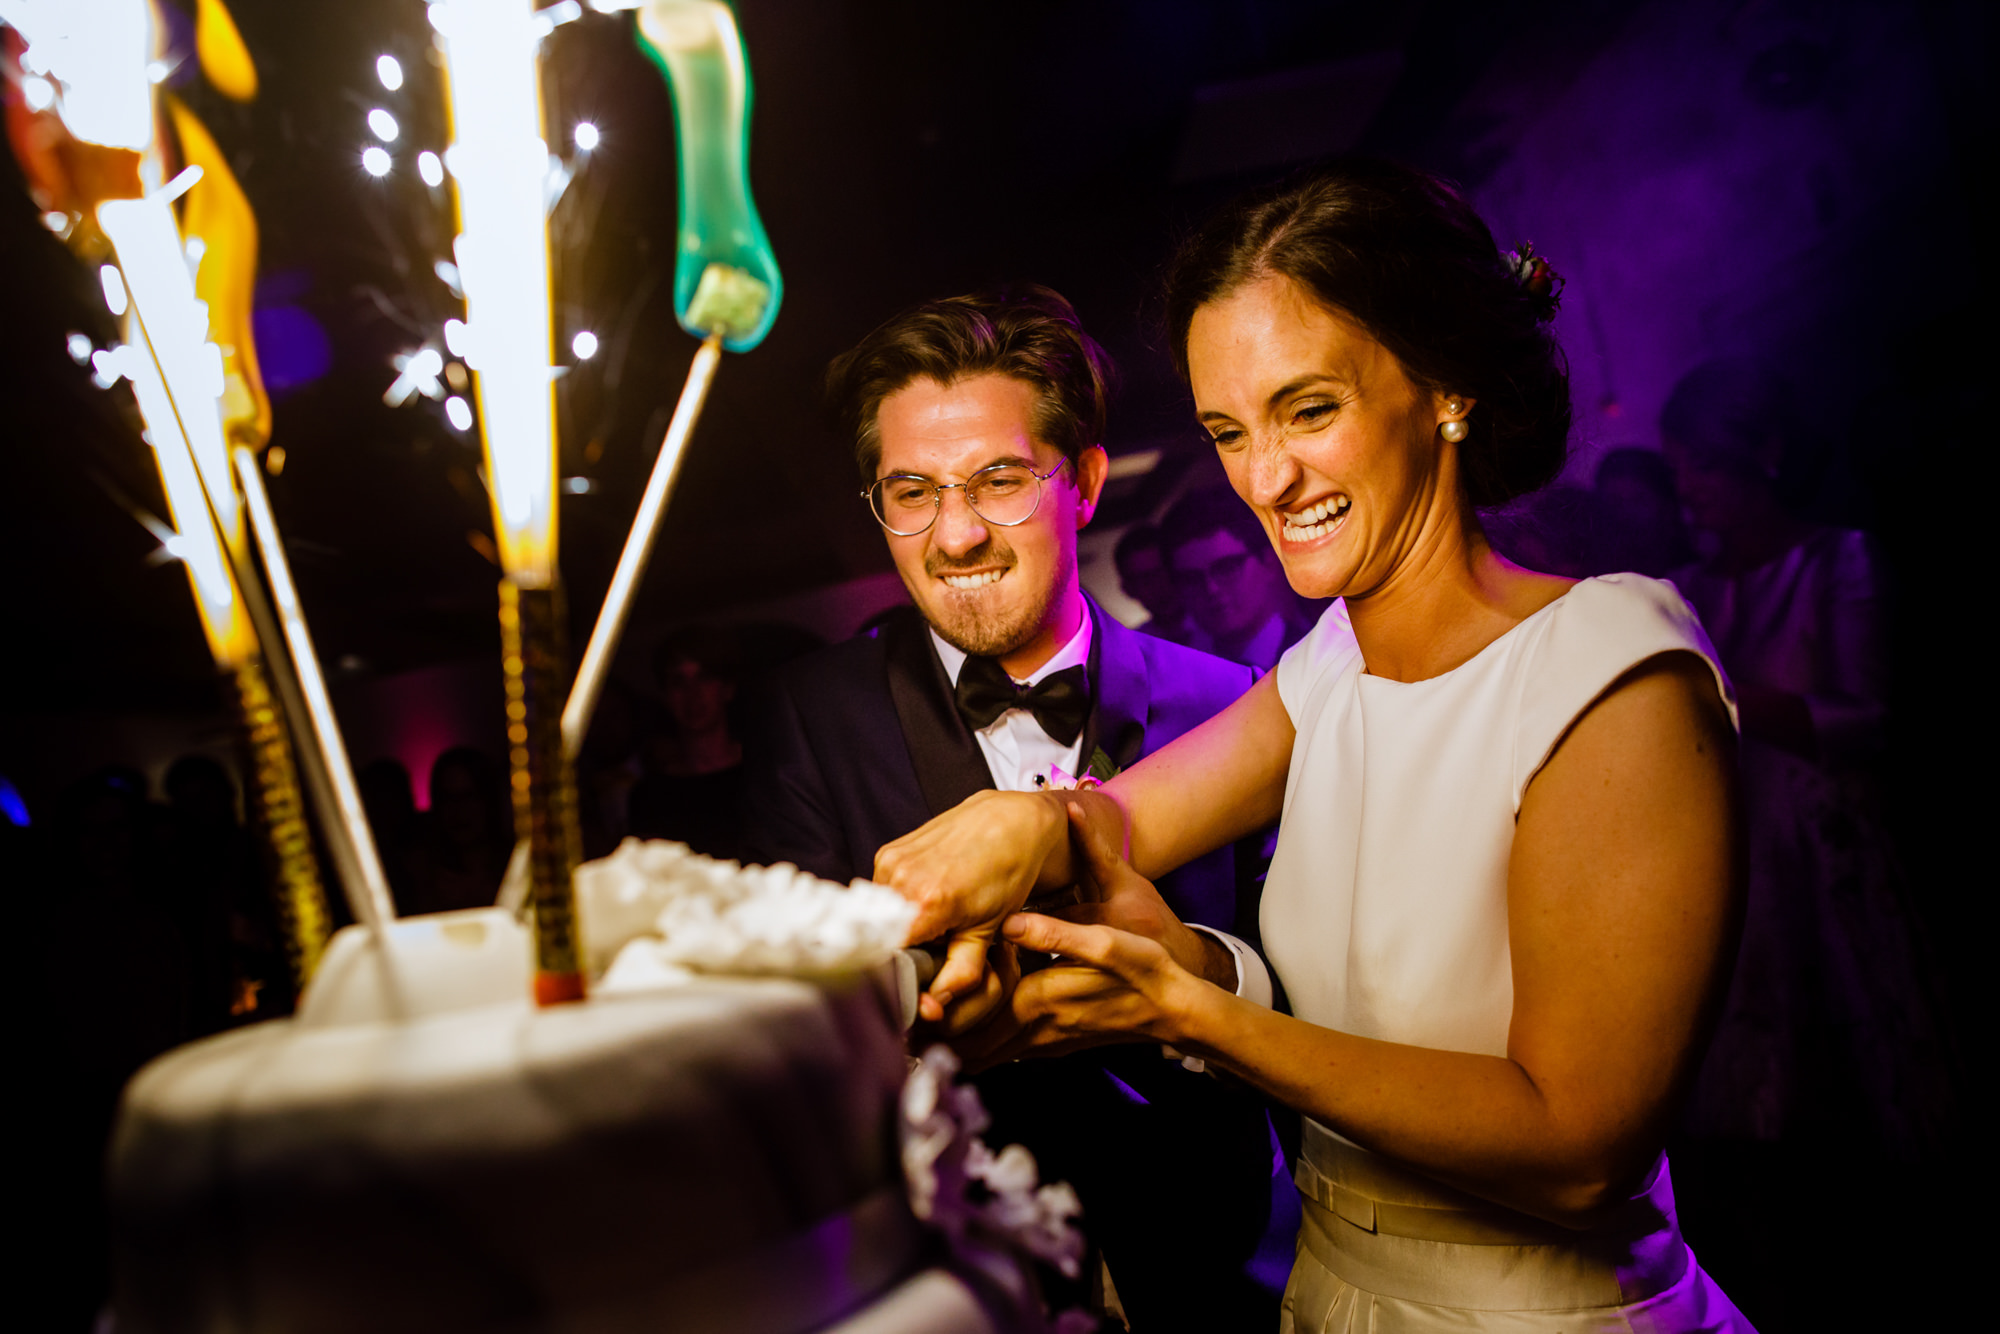 Bride and groom cut cake with a vengeance - Philippe Swiggers - Belgium